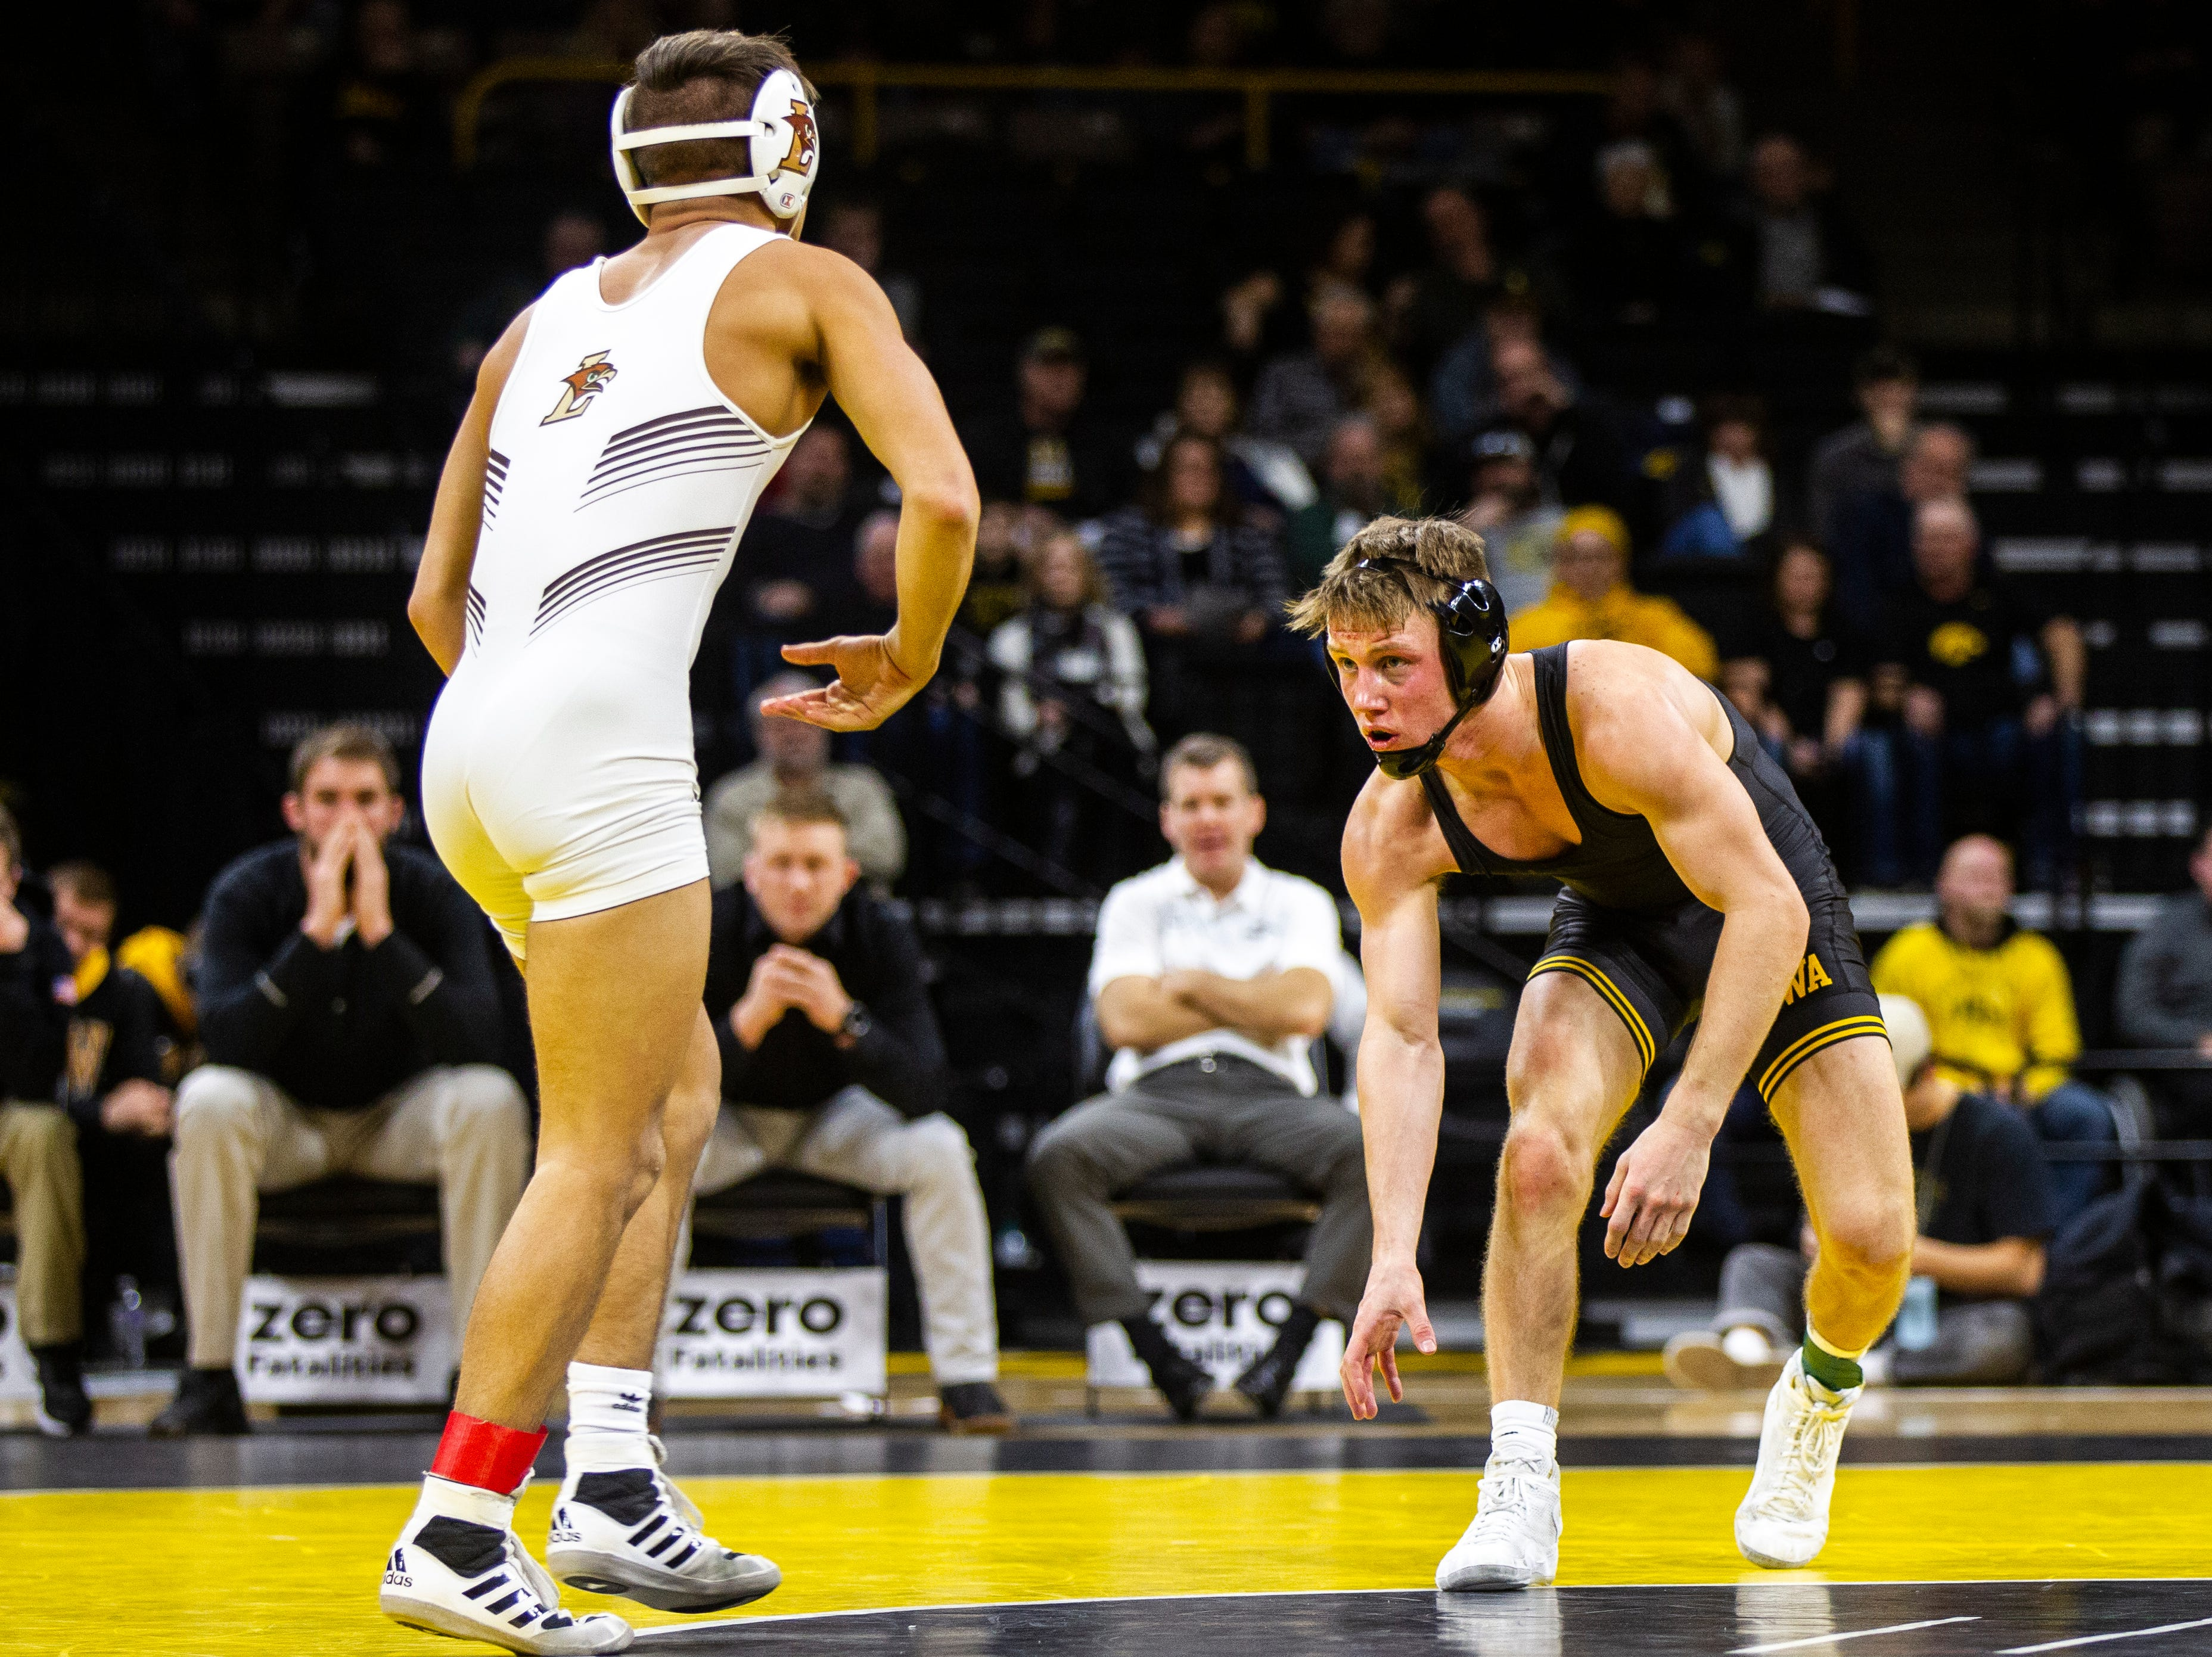 'He leads with his face': Iowa's Max Murin looks to continue solid start against Minnesota